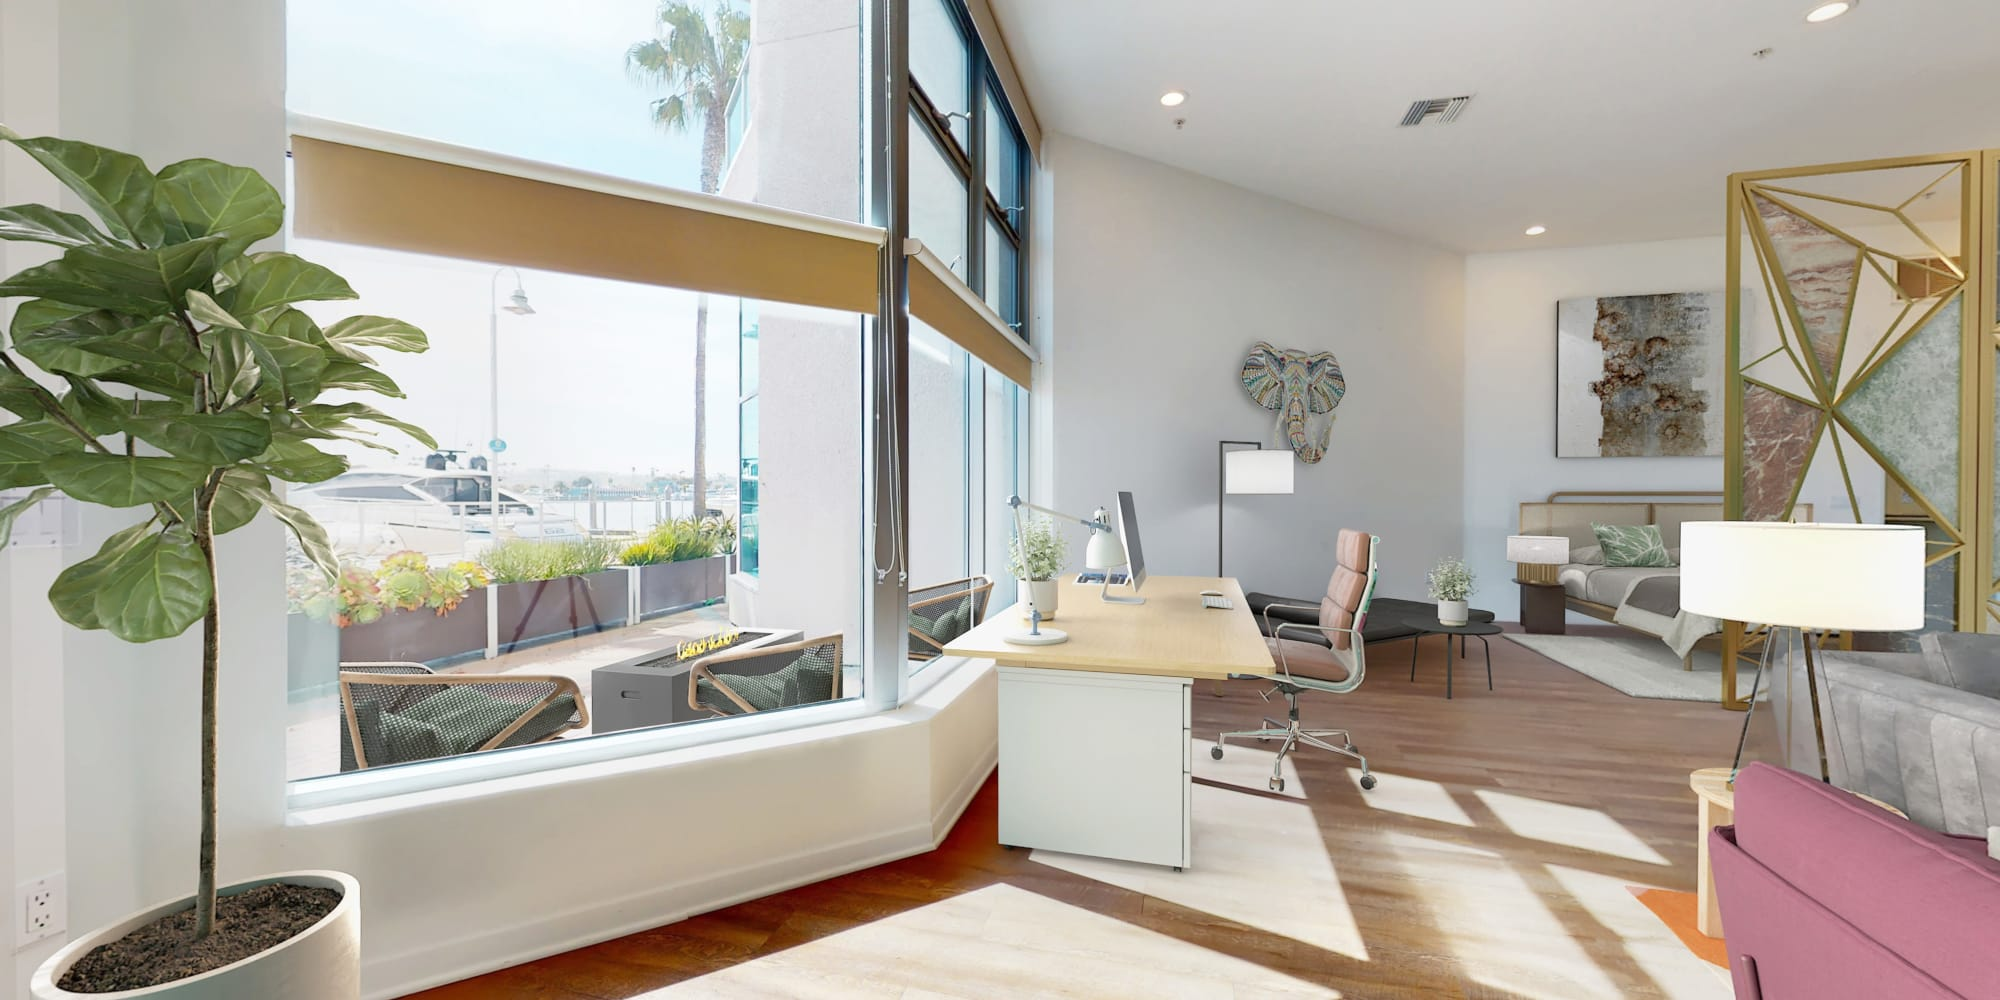 Spacious loft apartment's work space with large windows, waterfront view of the marina, and hardwood floors at Esprit Marina del Rey in Marina Del Rey, California